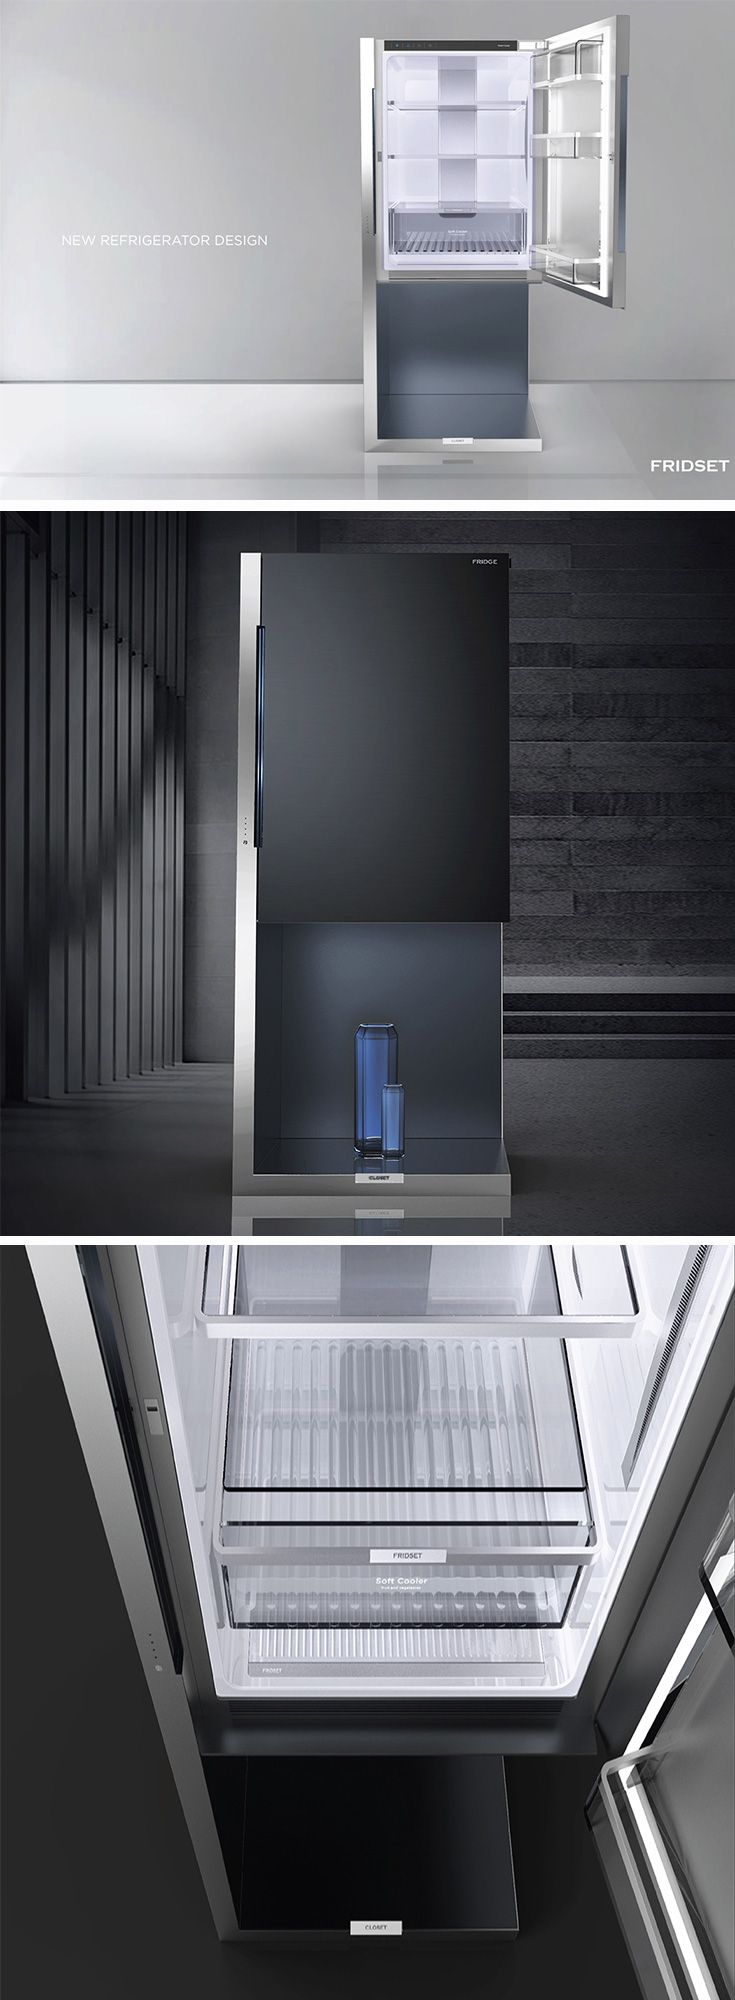 FRIDSET fridge is a cool combination of metal and glass, its stark aesthetic will be right at home as a modern kitchen highlight.